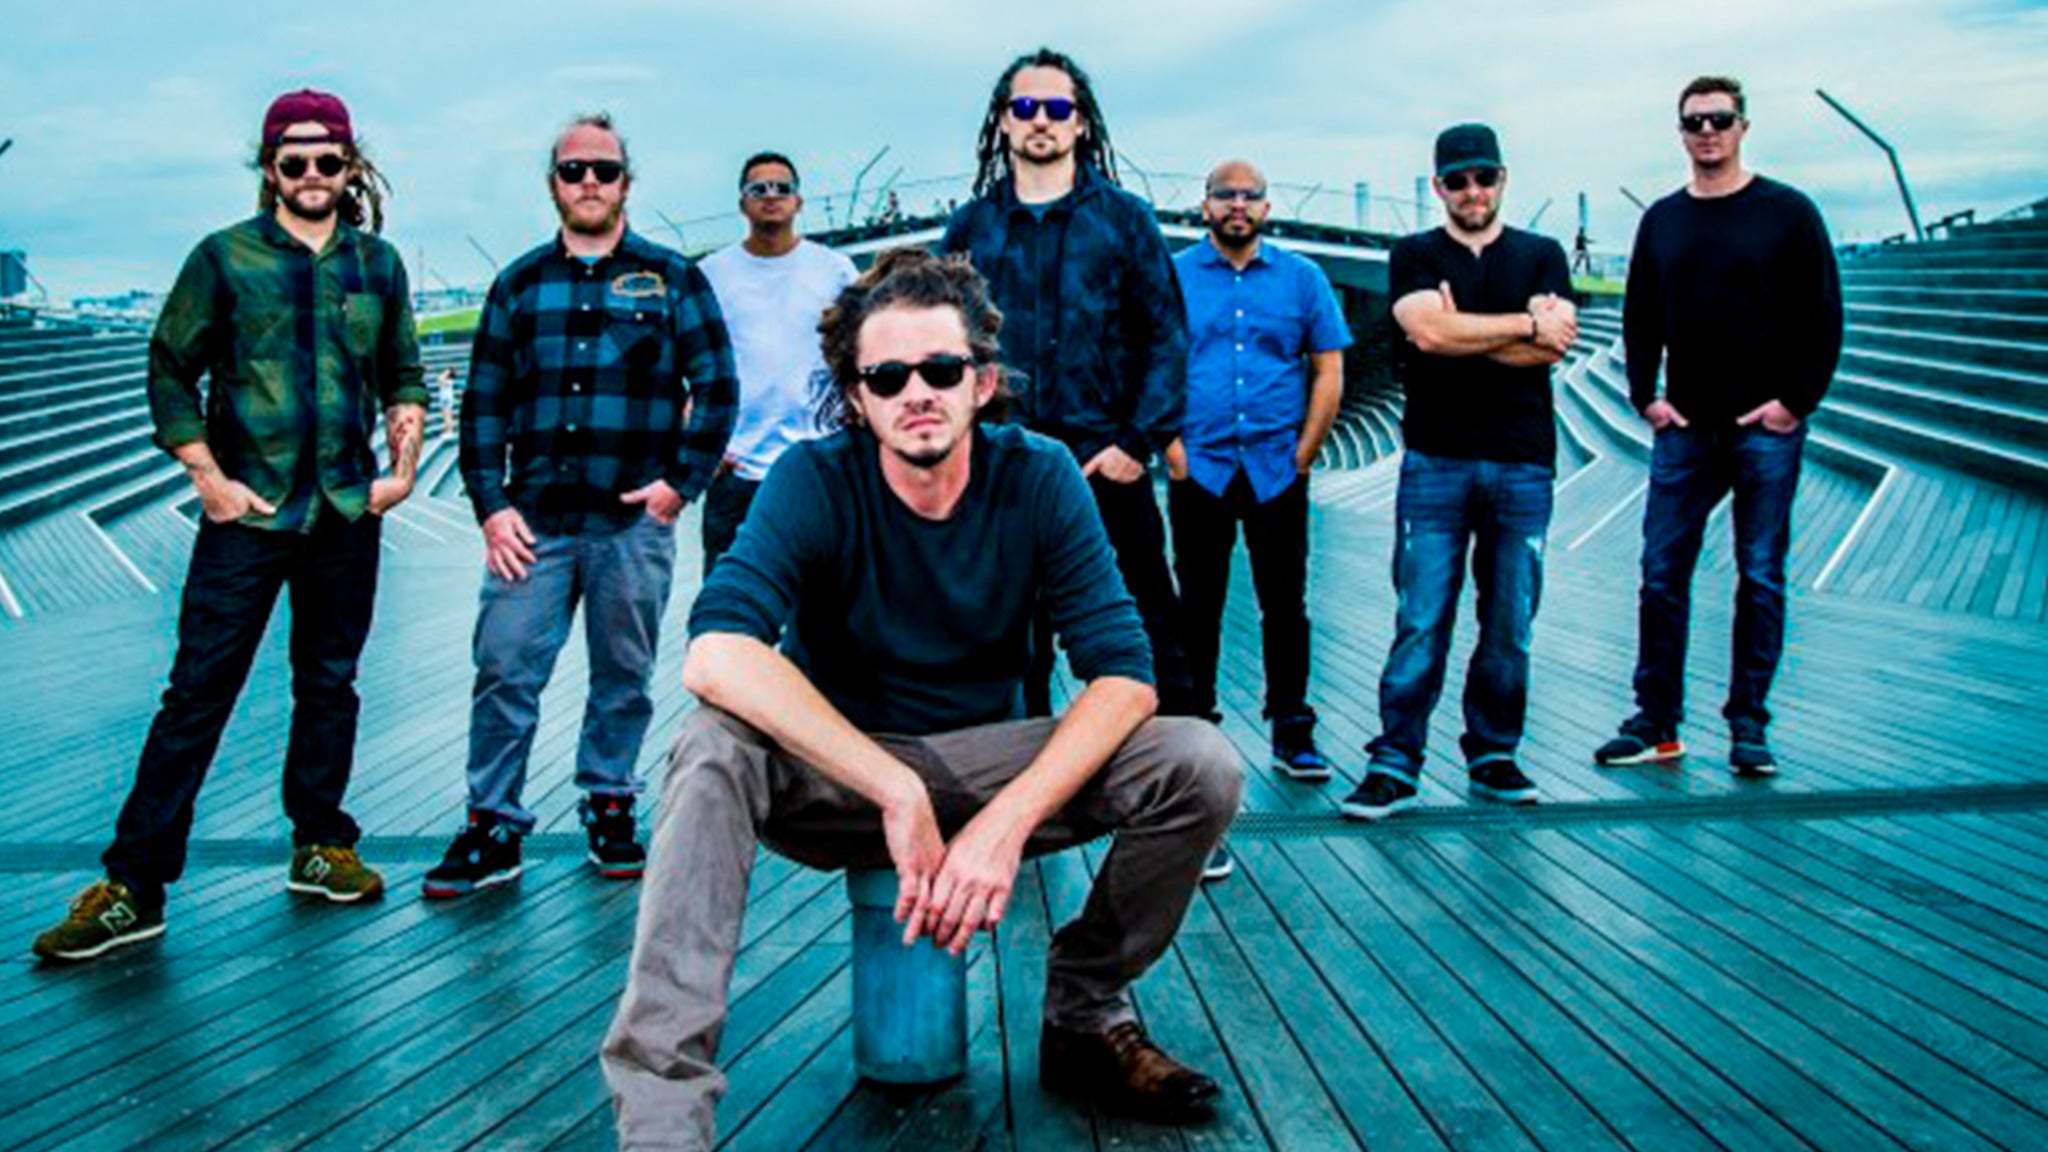 SiriusXM The Joint Presents: SOJA at Fox Theater - Oakland